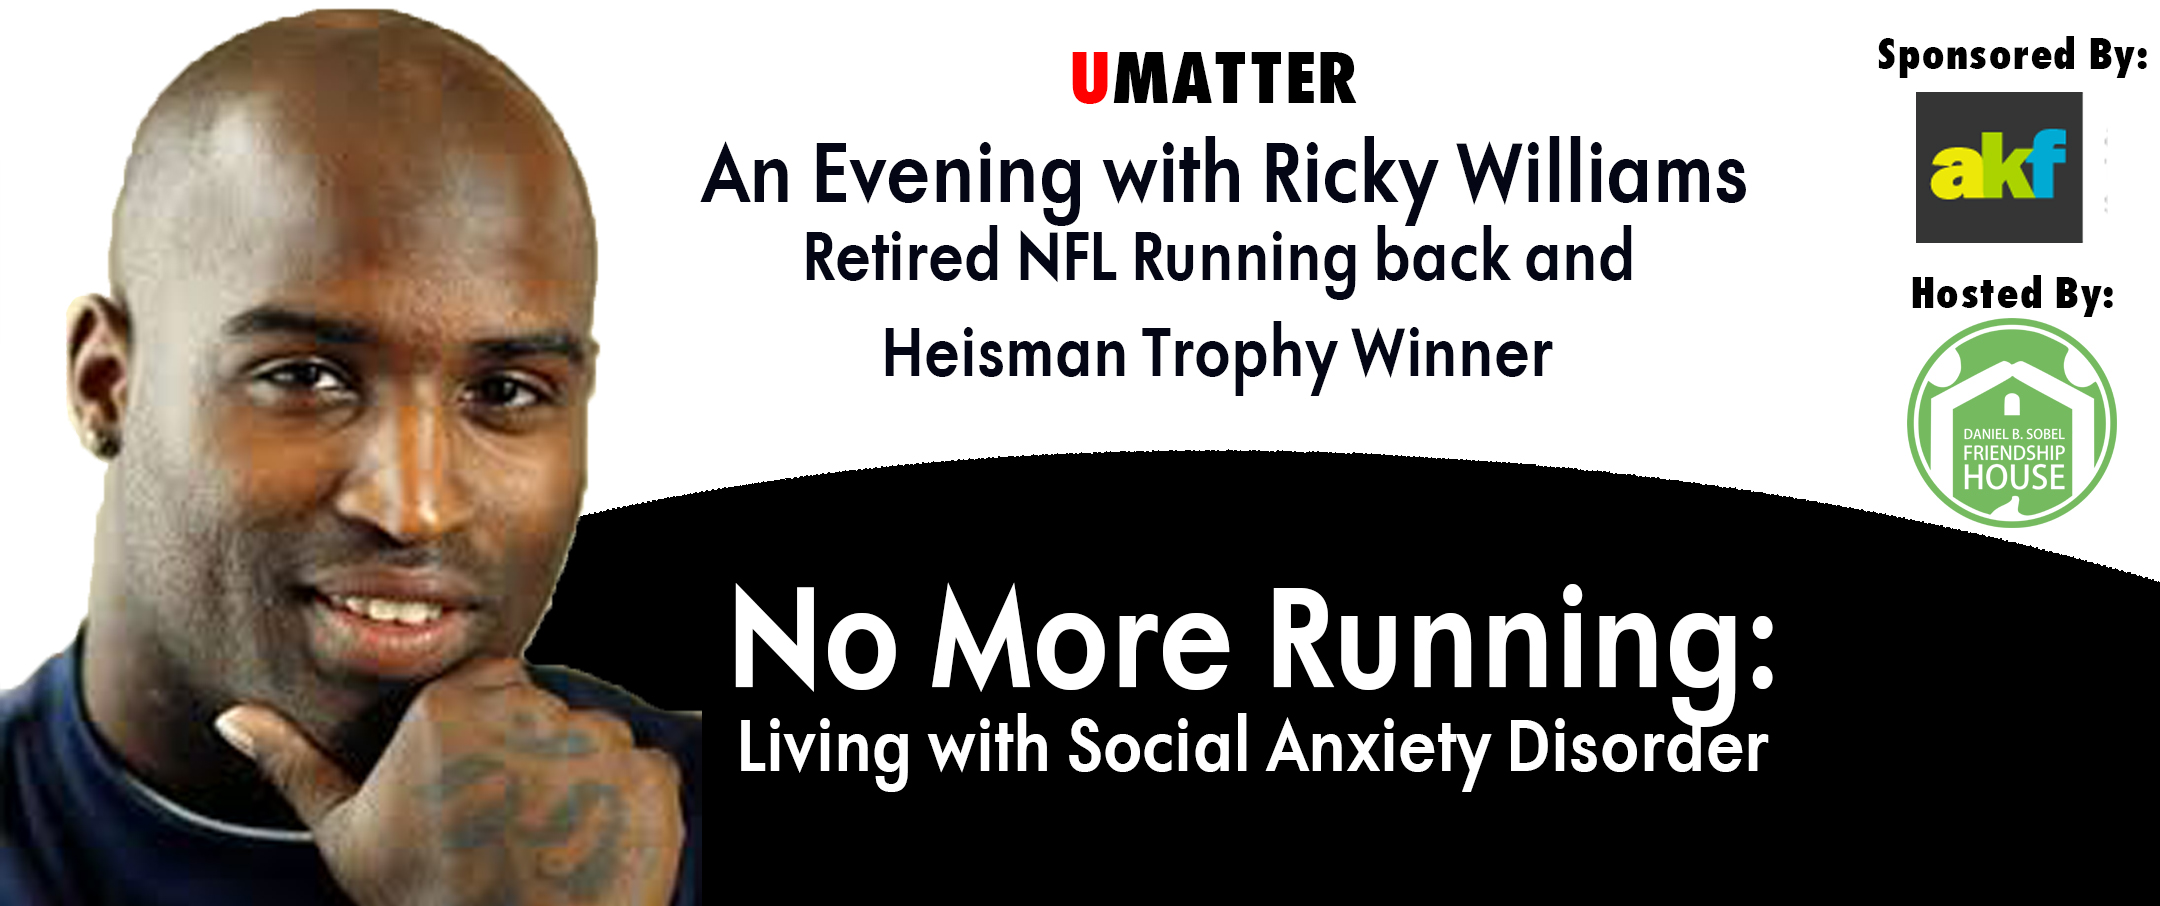 No More Running: Living with Social Anxiety Disorder